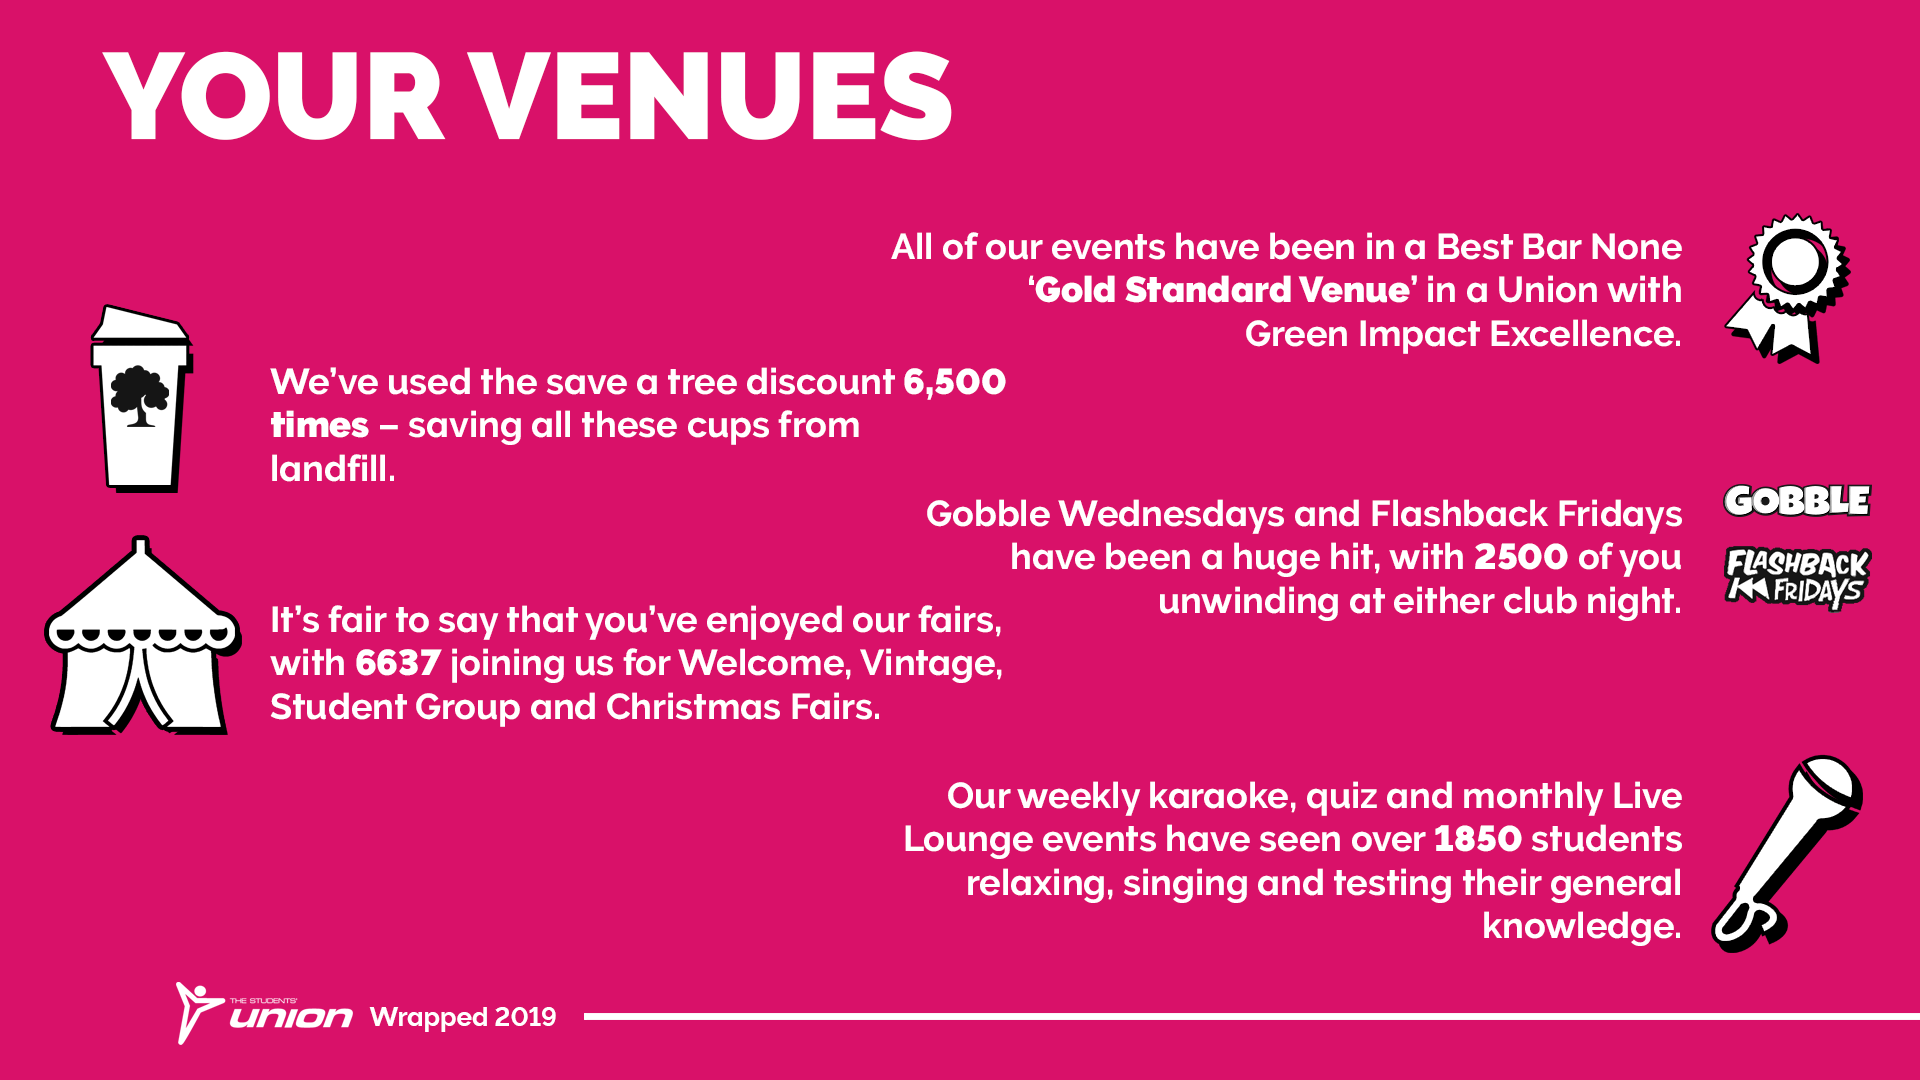 Your venues. All of our events have been in a Best Bar None 'Gold Standard Venue' in a Union with Green Impact Excellence. We've used the save a tree discount 6,500 times - saving all these cups from landfill. Gobble Wednesdays and Flashback Fridays have been a huge hit, with 2500 of you unwinding at either club night. It's fair to say that you've enjoyed our fairs, with 6637 joining us for Welcome, Vintage and Student Group and Christmas Fairs. Our weekly karaoke, quiz and monthly Live Lounge events have seen over 1850 students relaxing, singing and testing their general knowledge.